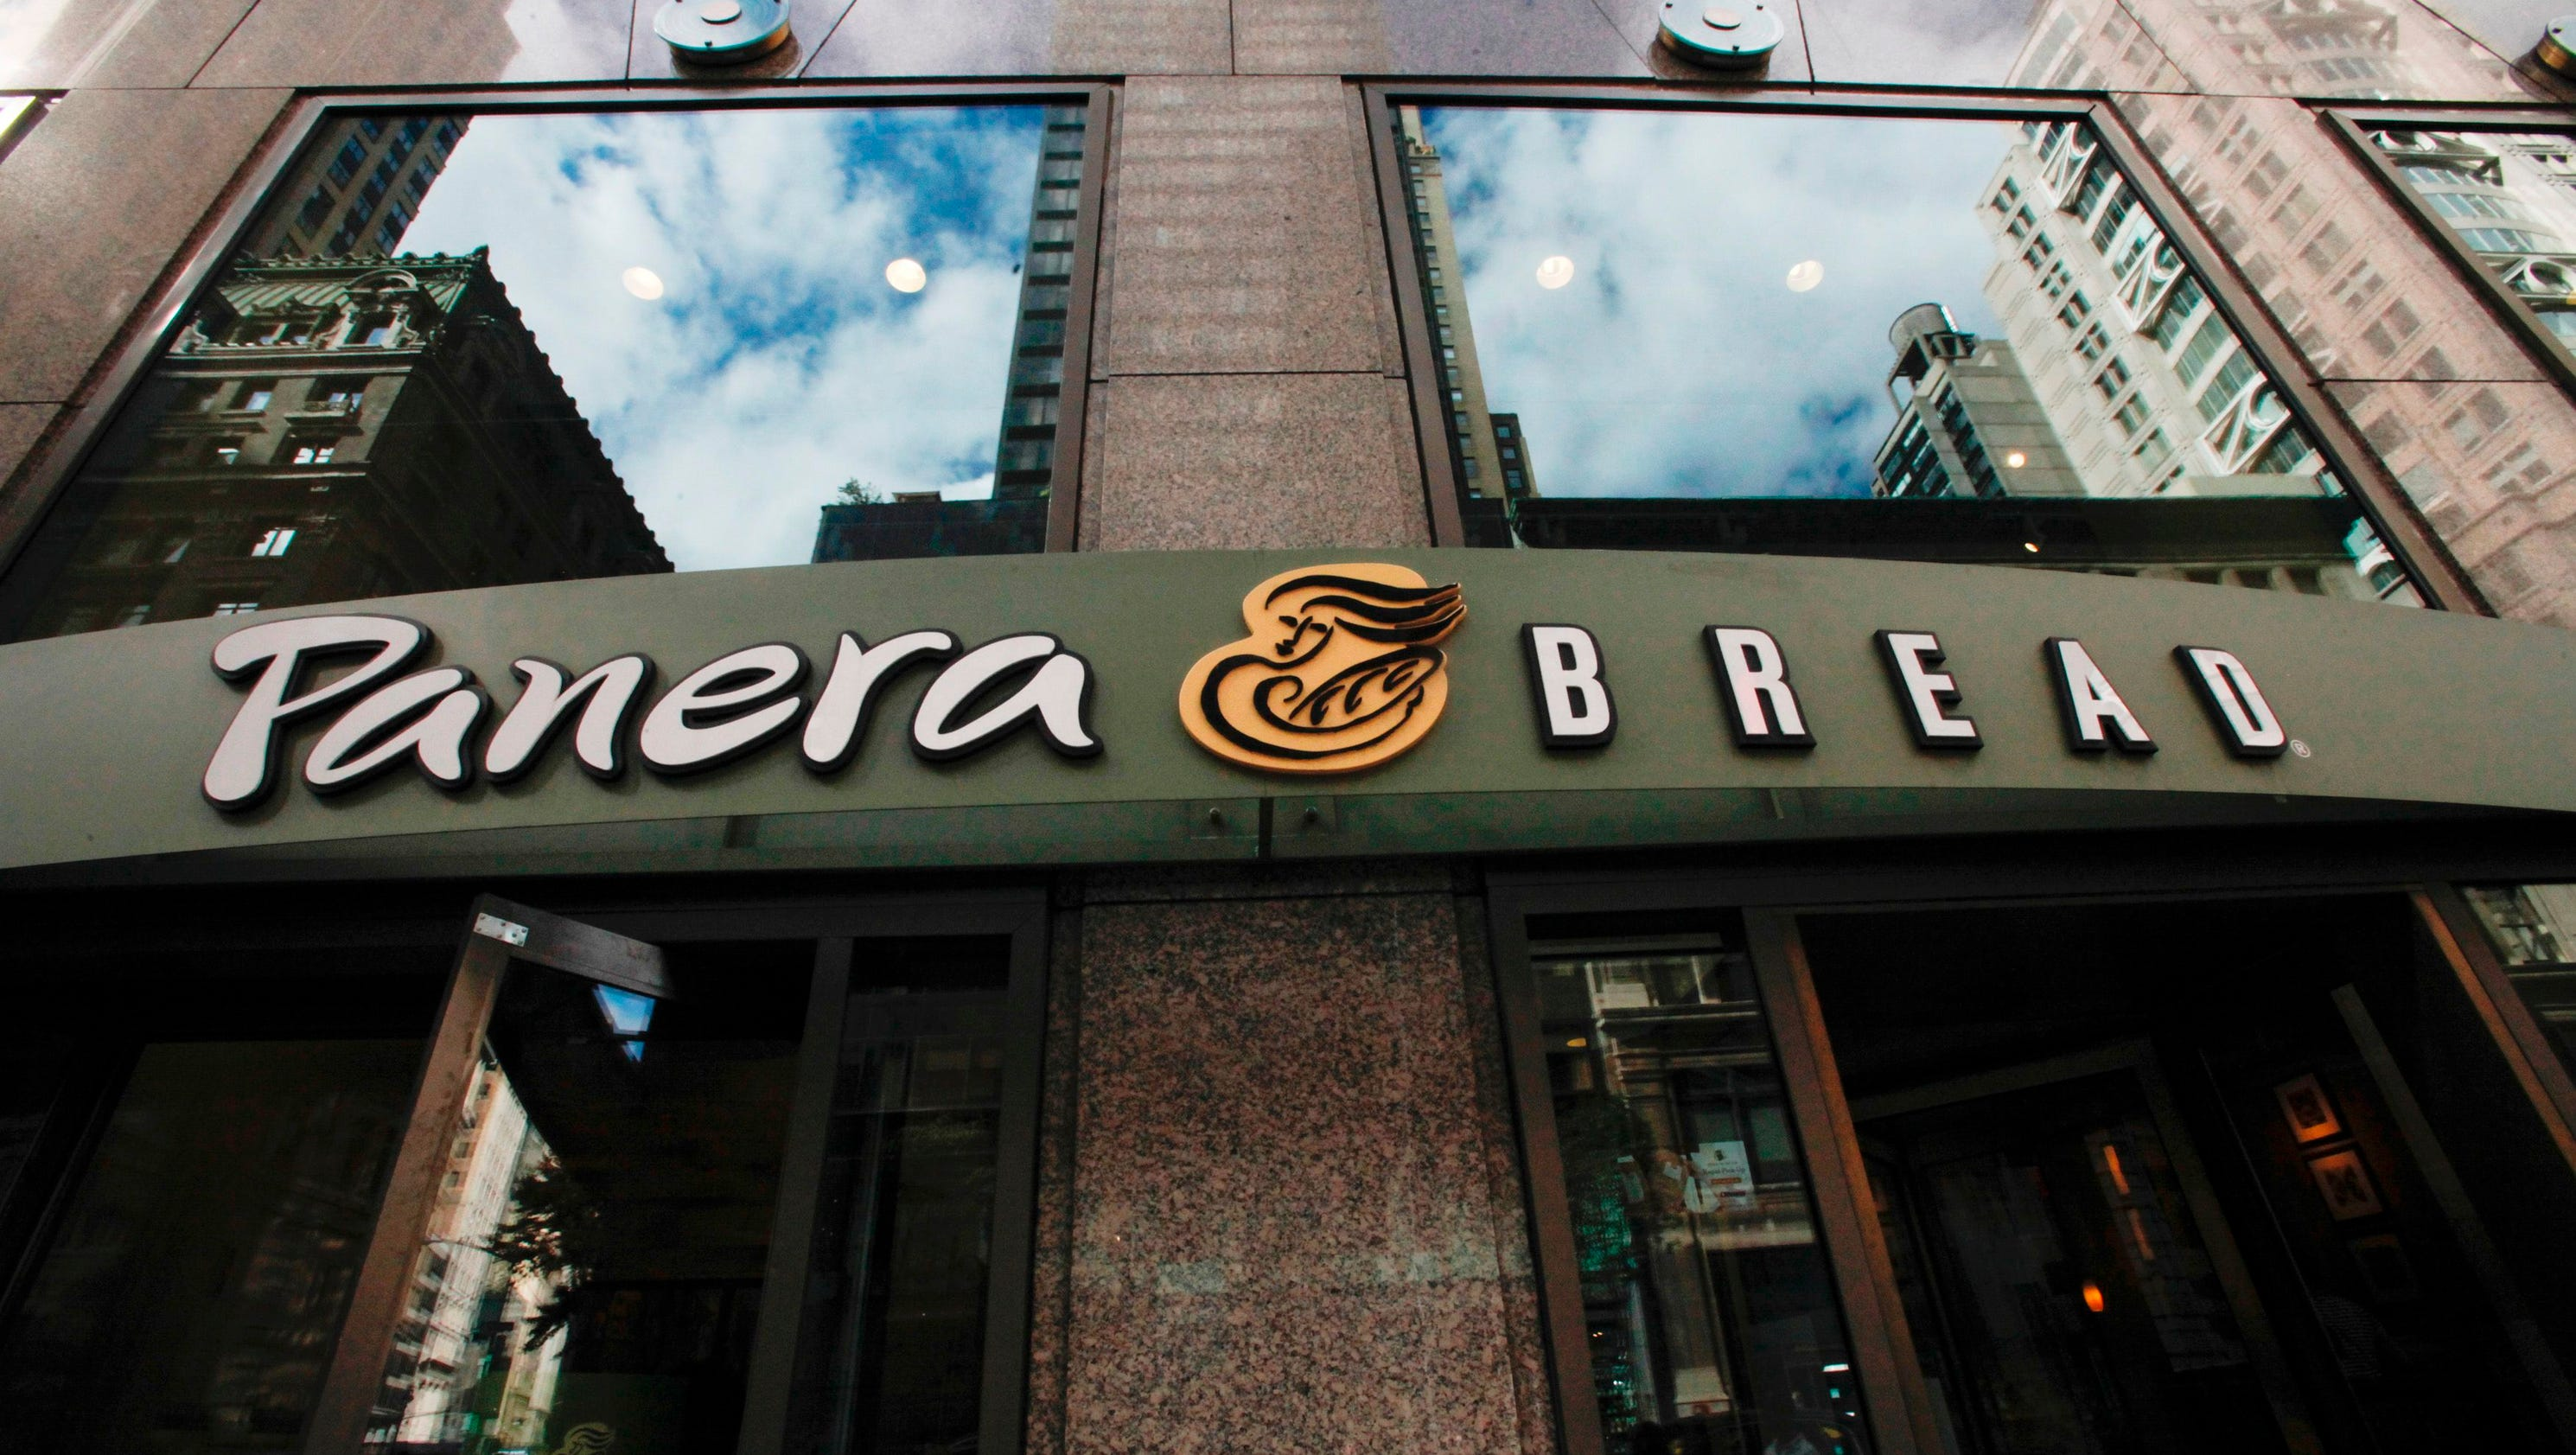 How to Use Panera Bread Coupons: Check out the Panera Bread sales featured on skuzcalsase.ml Click